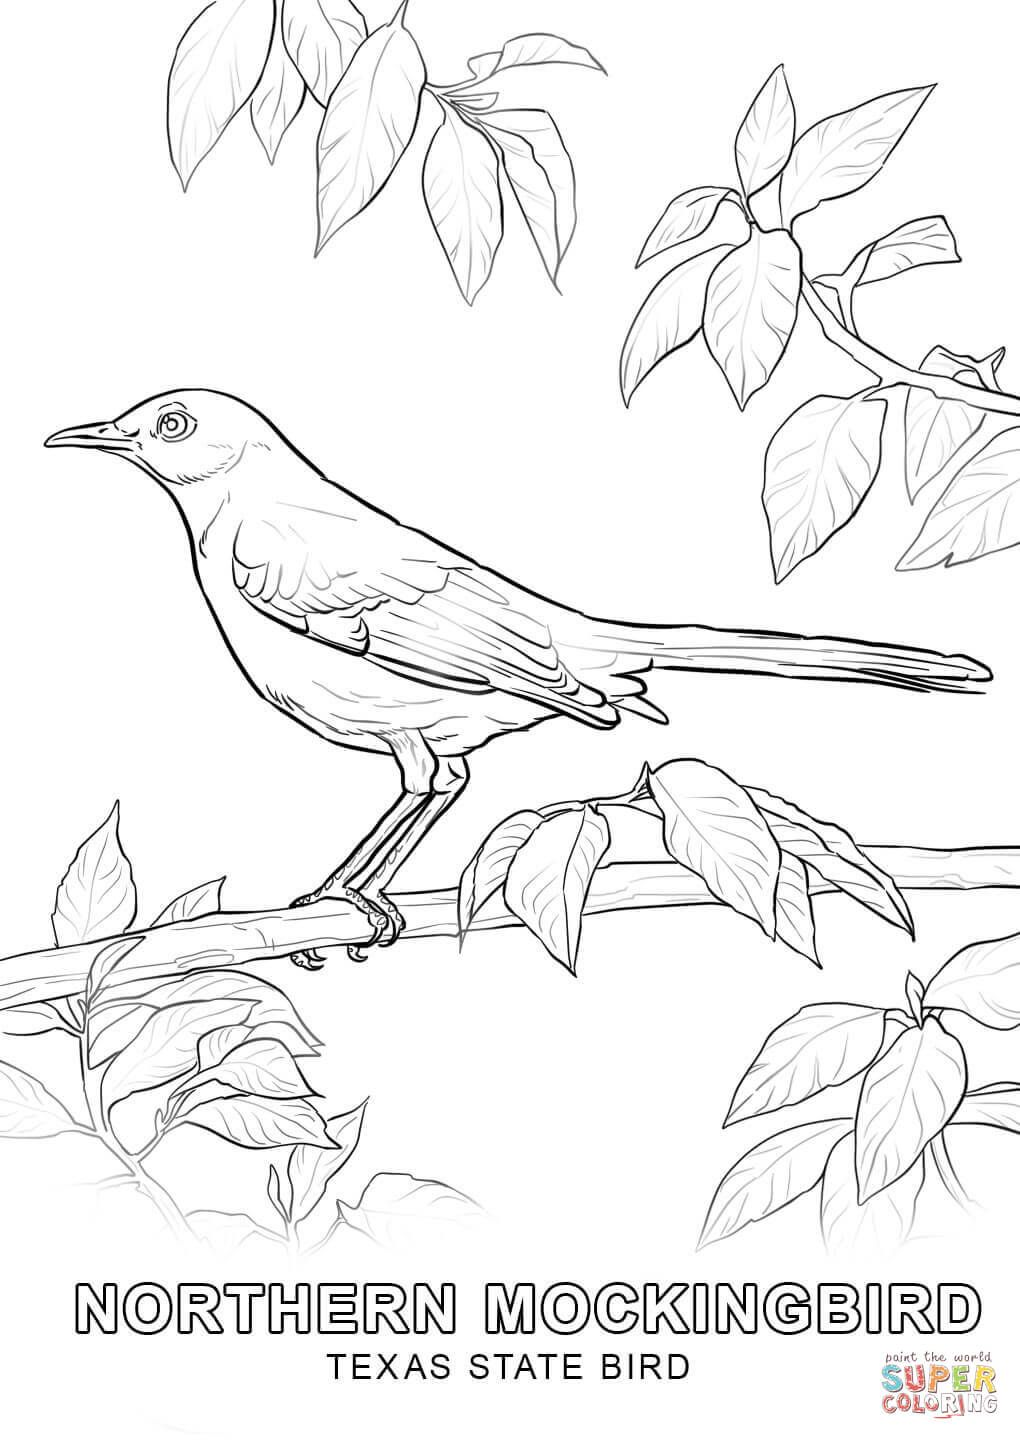 Texas State Bird Coloring Page Free Printable Coloring Pages In 2020 Bird Coloring Pages Flag Coloring Pages Coloring Pages Nature